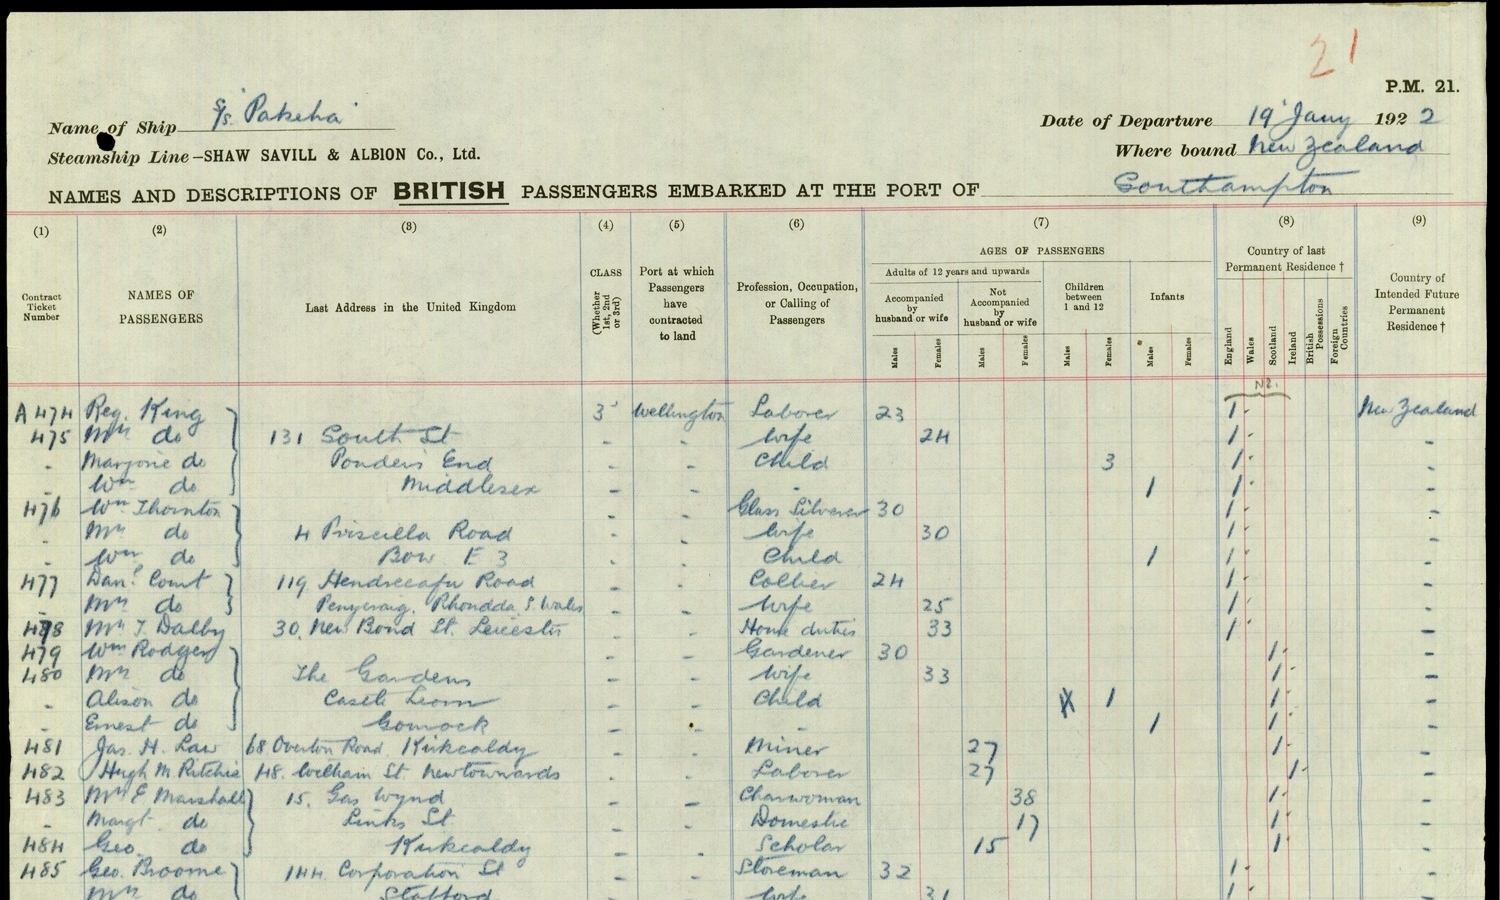 Jas (James) Law GF islisted on the  Pakeha  Passenger list on his own, passenger 481, age 27yrs, miner. 68 Overton Rd his last address in Kirkcaldy, Fifeshire